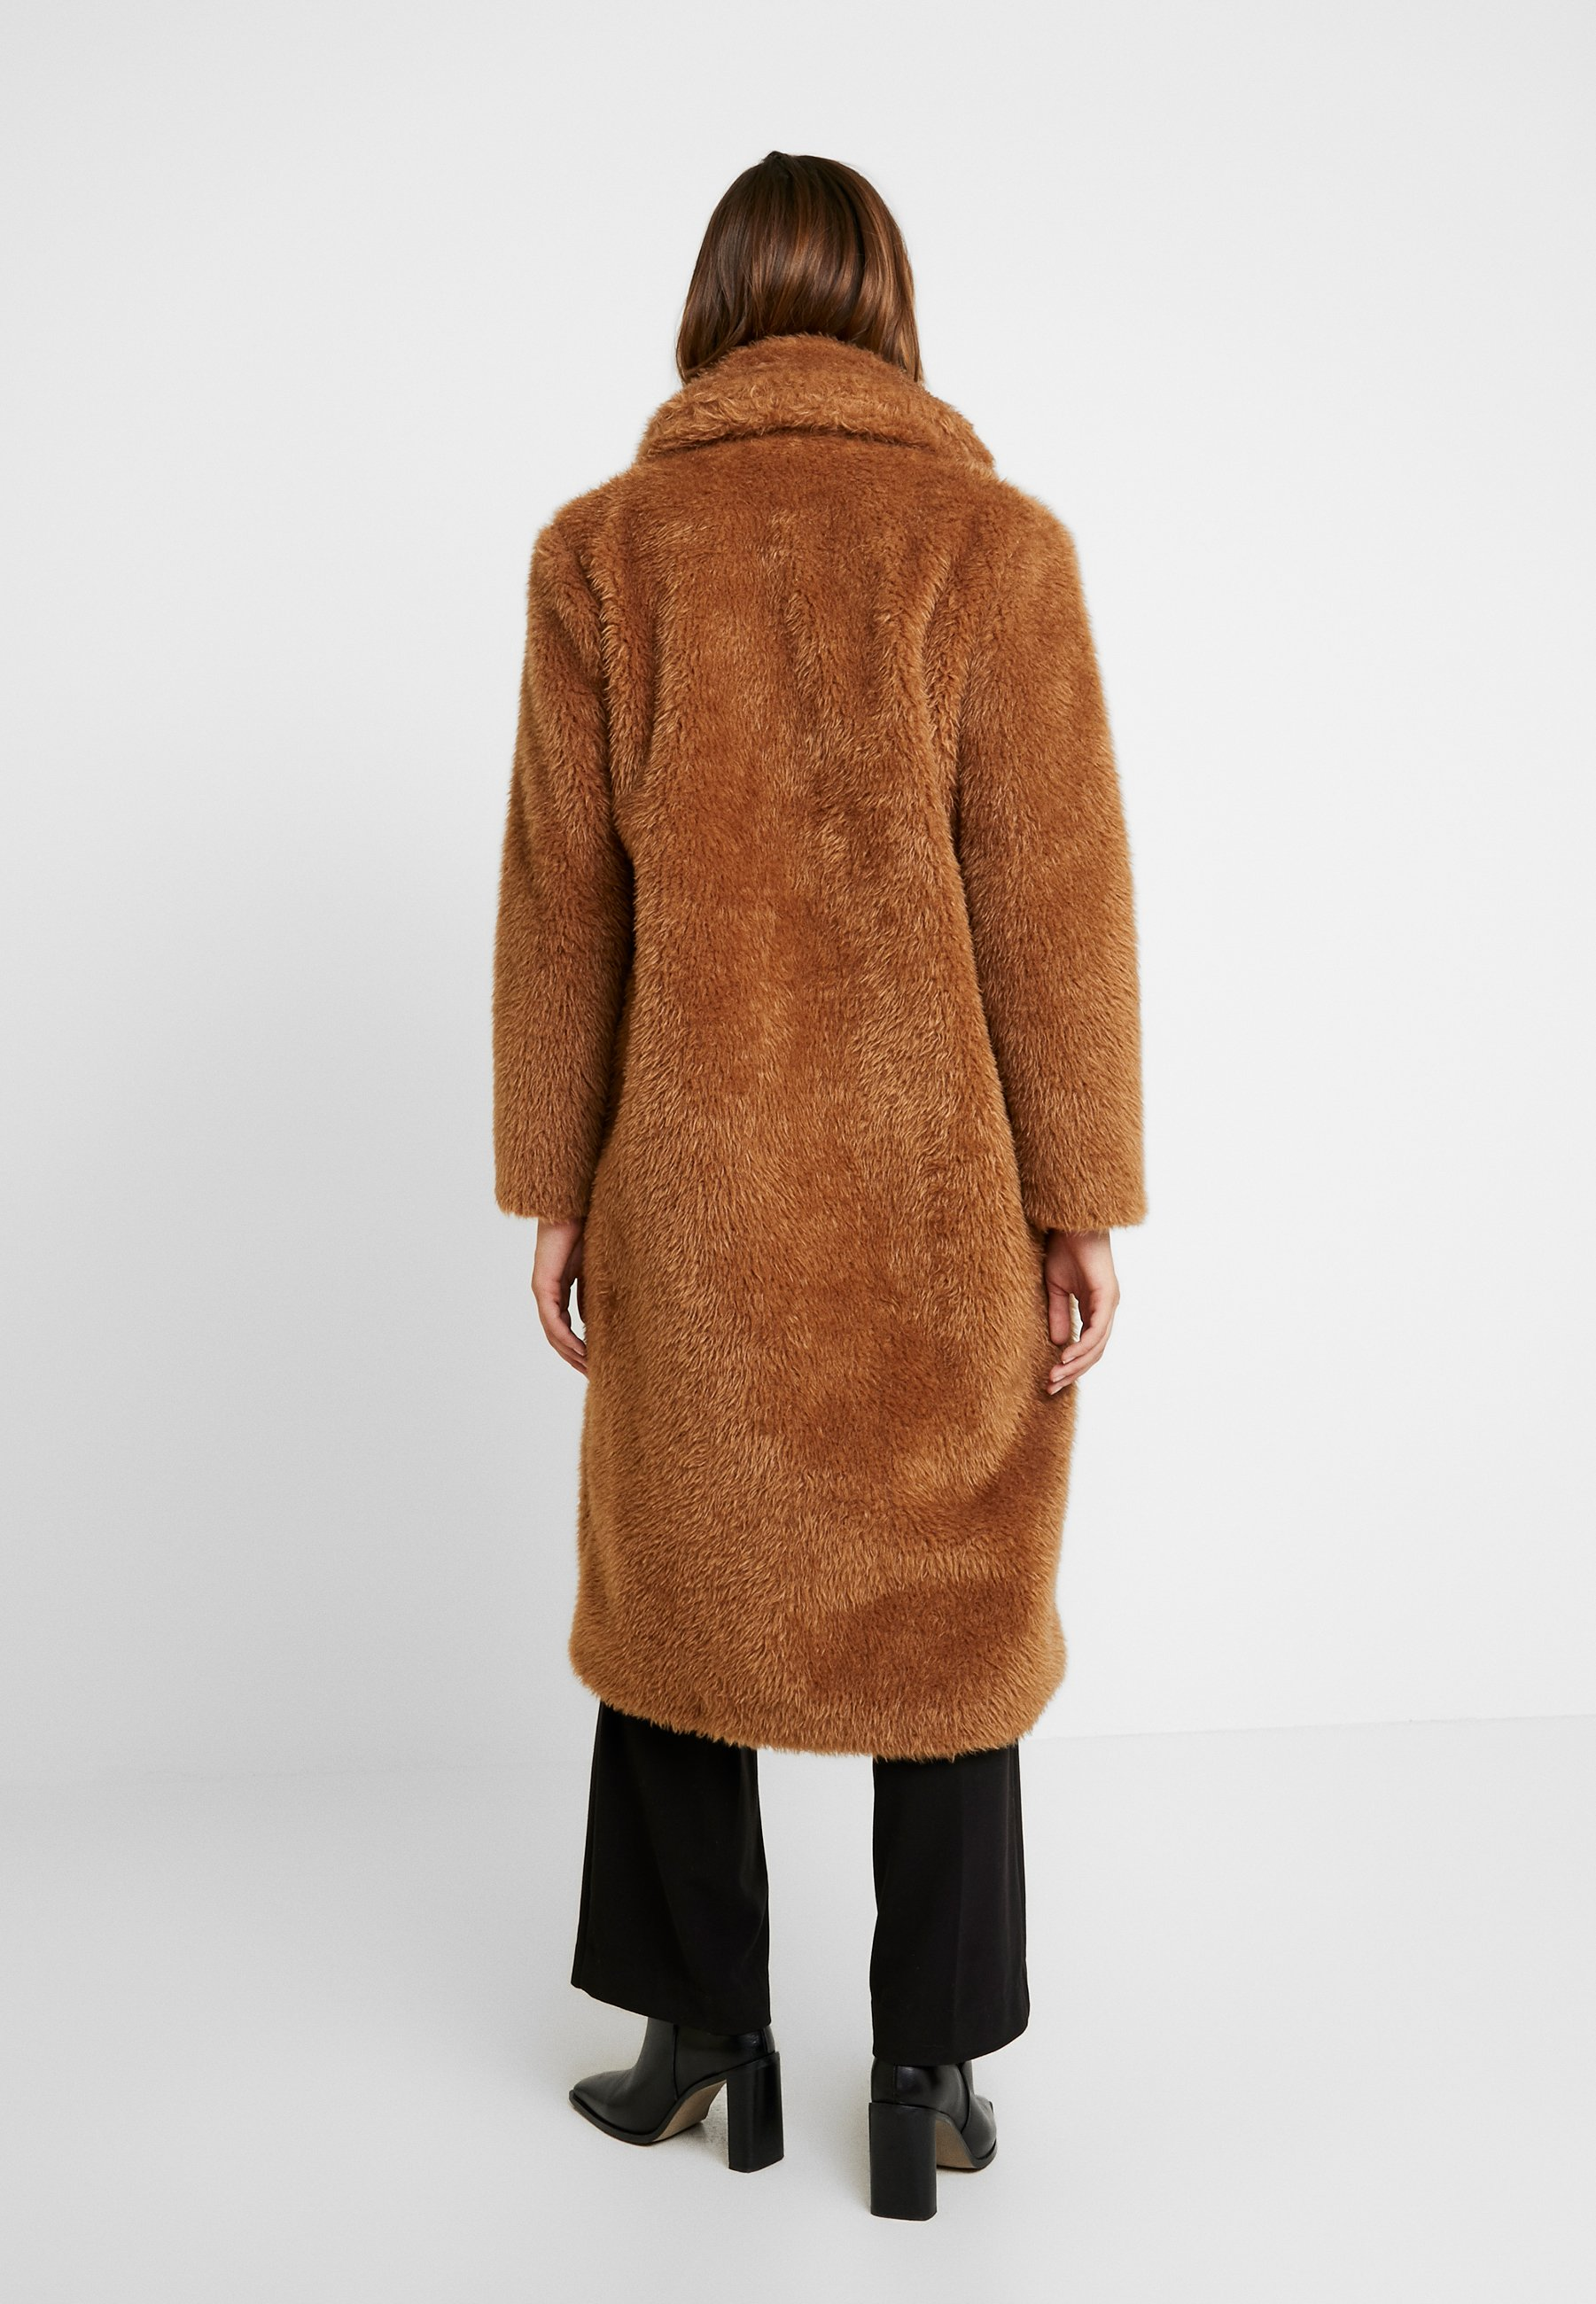 Liu Jo Jeans GIACCONE SINTETICO - Cappotto invernale sweet caramel